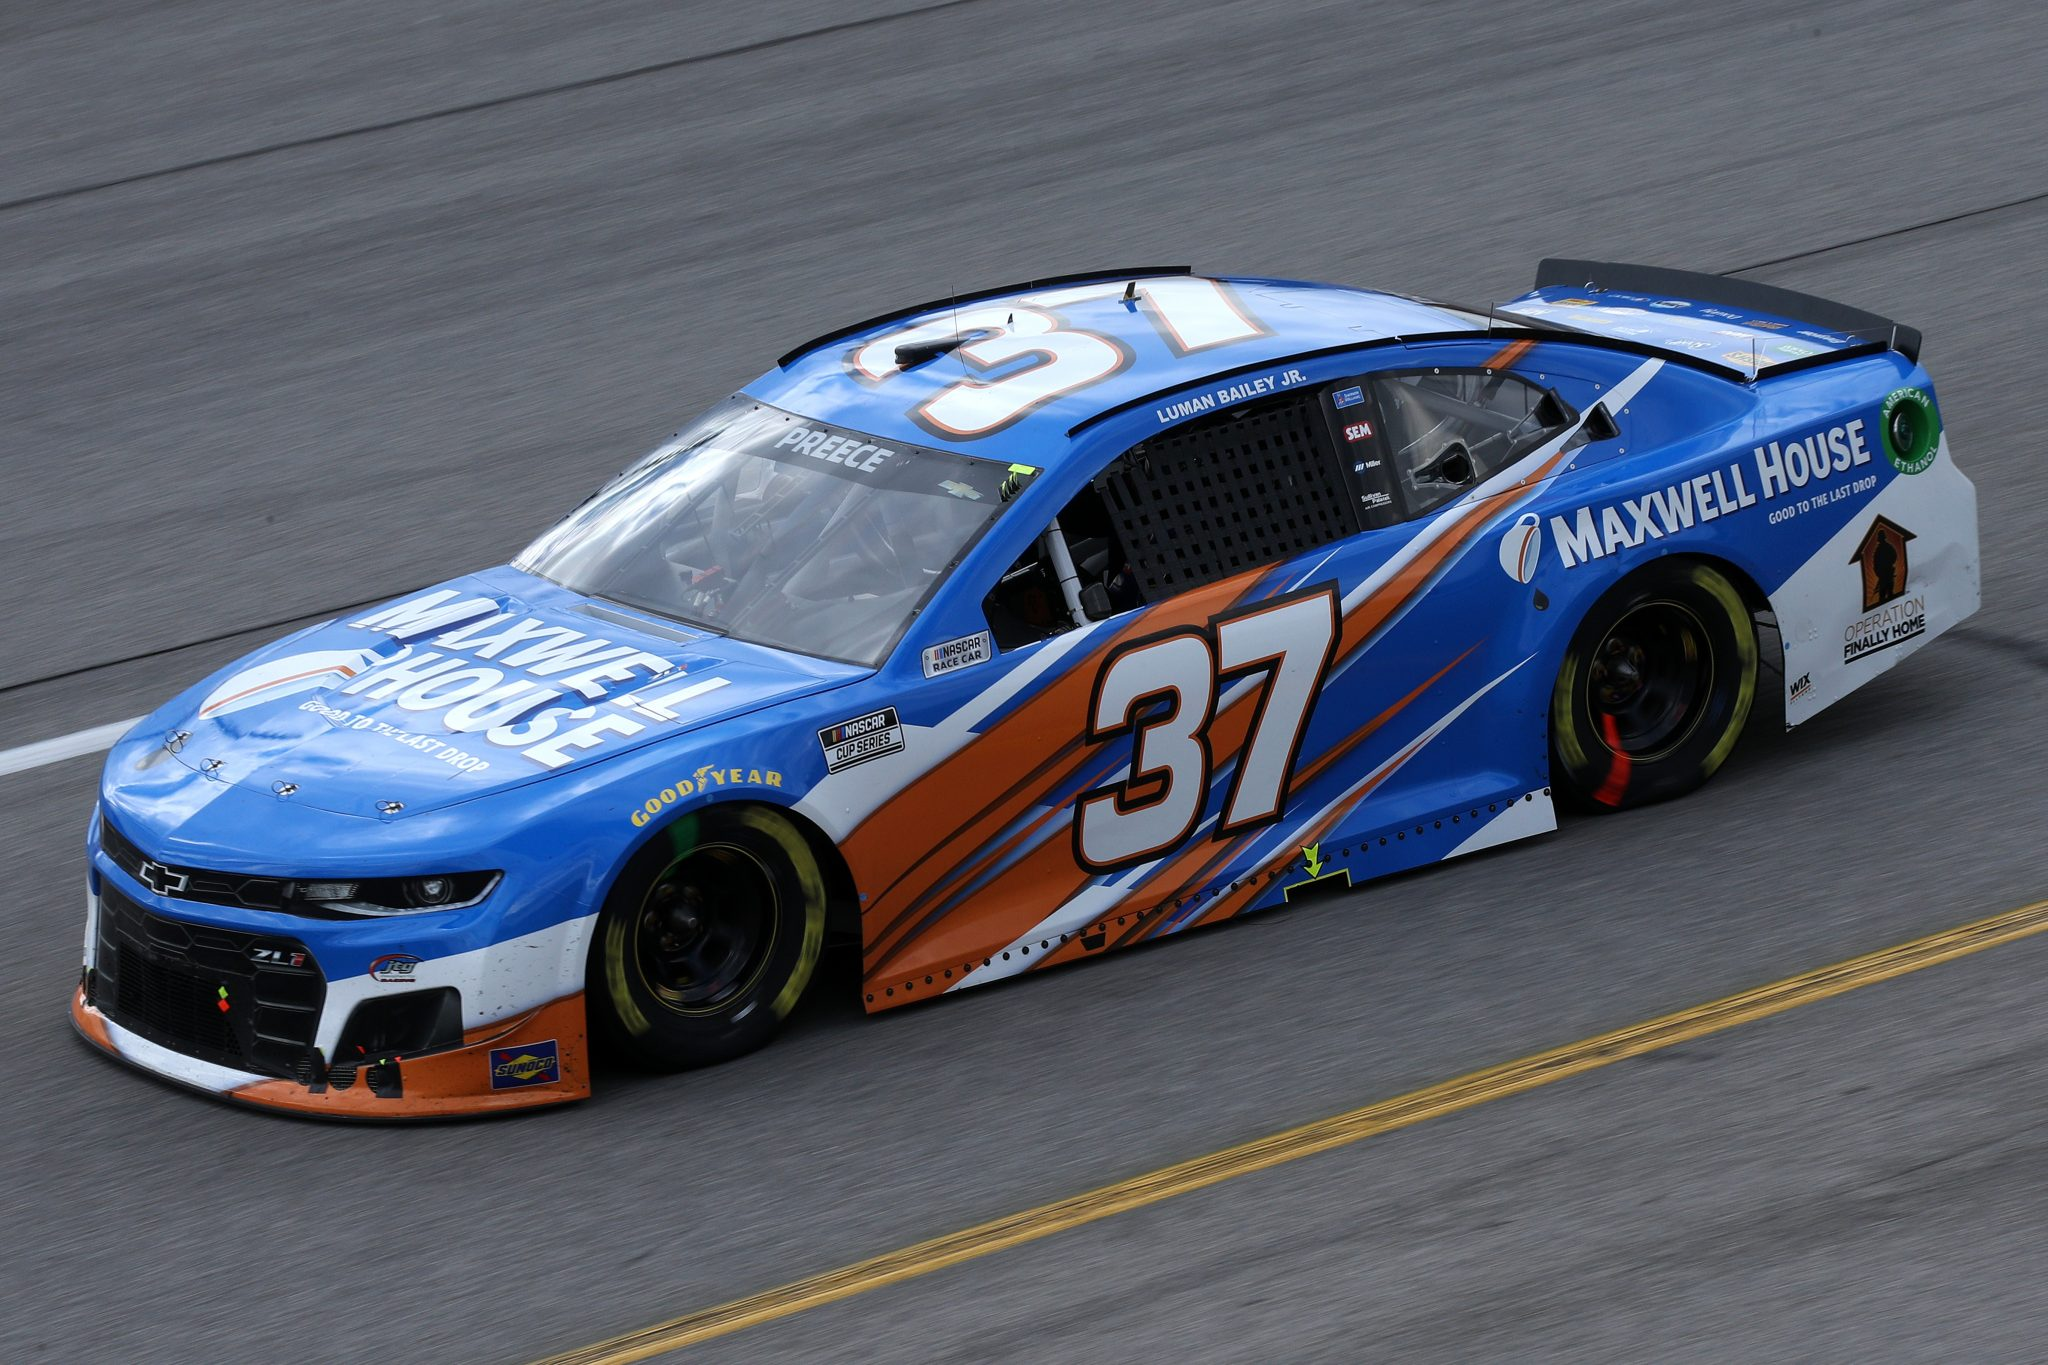 RICHMOND, VIRGINIA - APRIL 18: Ryan Preece, driver of the #37 Maxwell House Chevrolet, drives during the NASCAR Cup Series Toyota Owners 400 at Richmond Raceway on April 18, 2021 in Richmond, Virginia. (Photo by Sean Gardner/Getty Images)   Getty Images